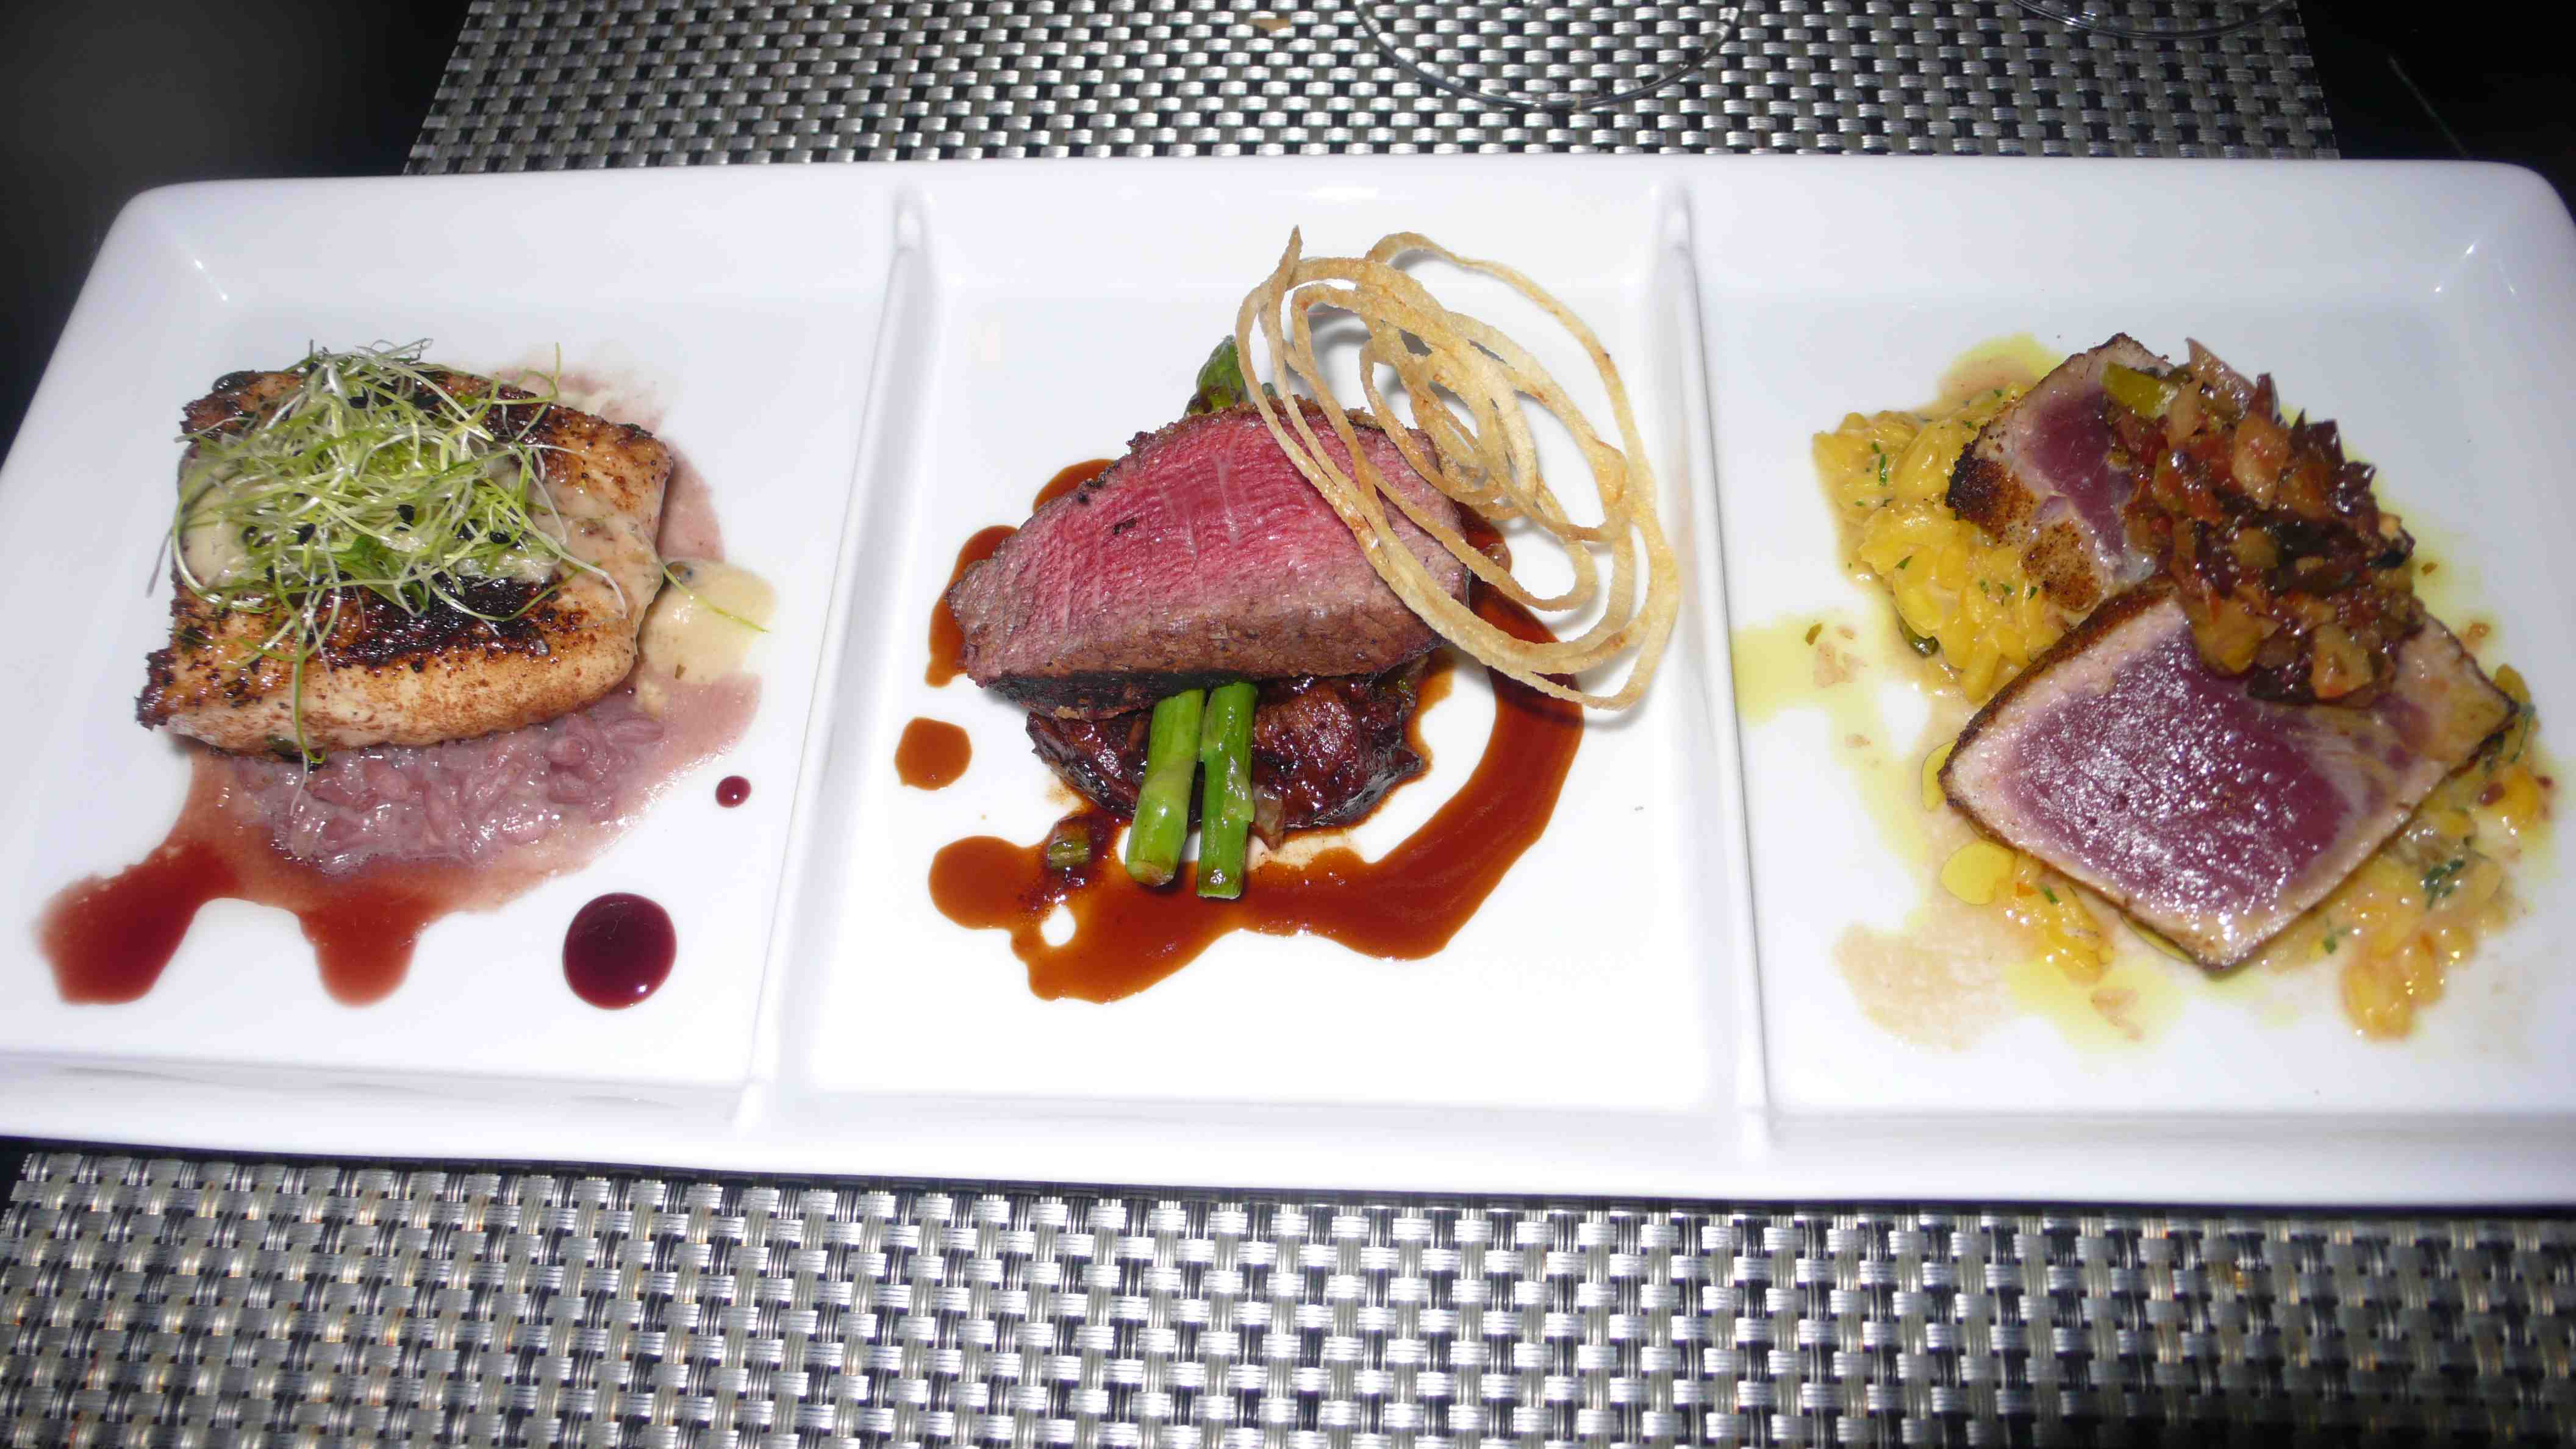 Trio of main dishes